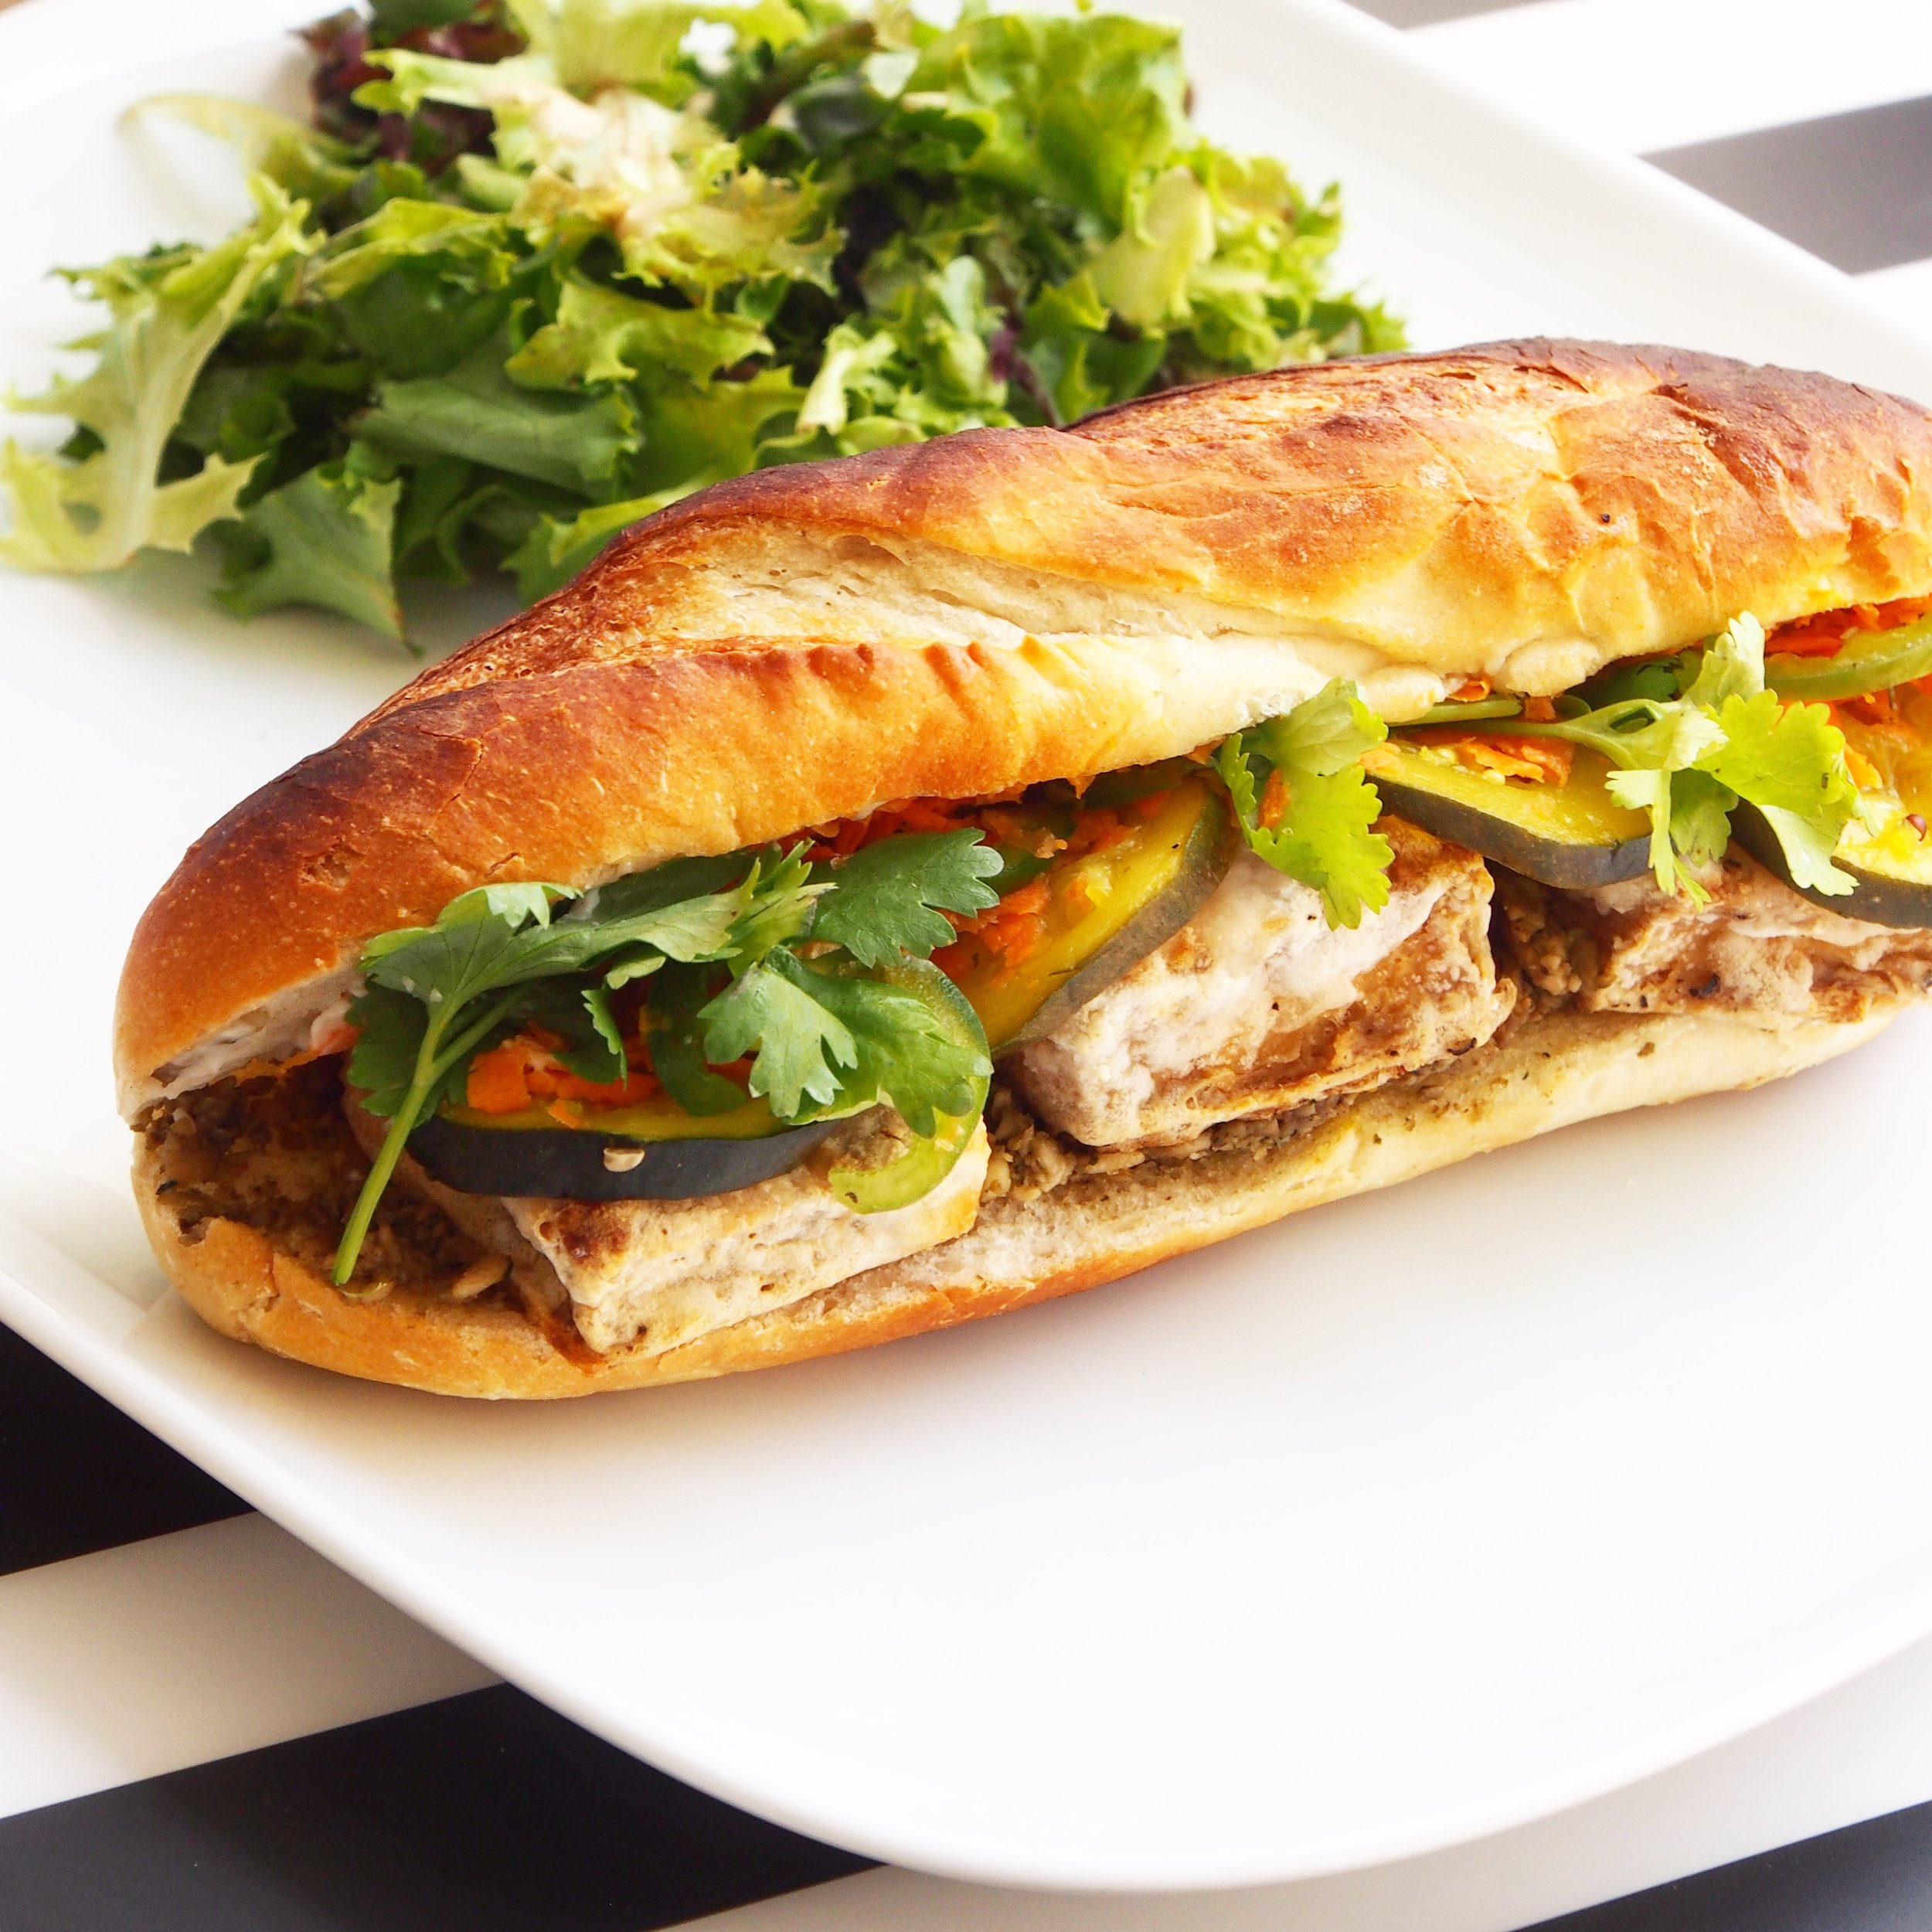 This is a wonderful vegan banh mi sandwich by Purple Carrot. It has crispy tofu and a sunflower seed paste that is out of this world delicious.